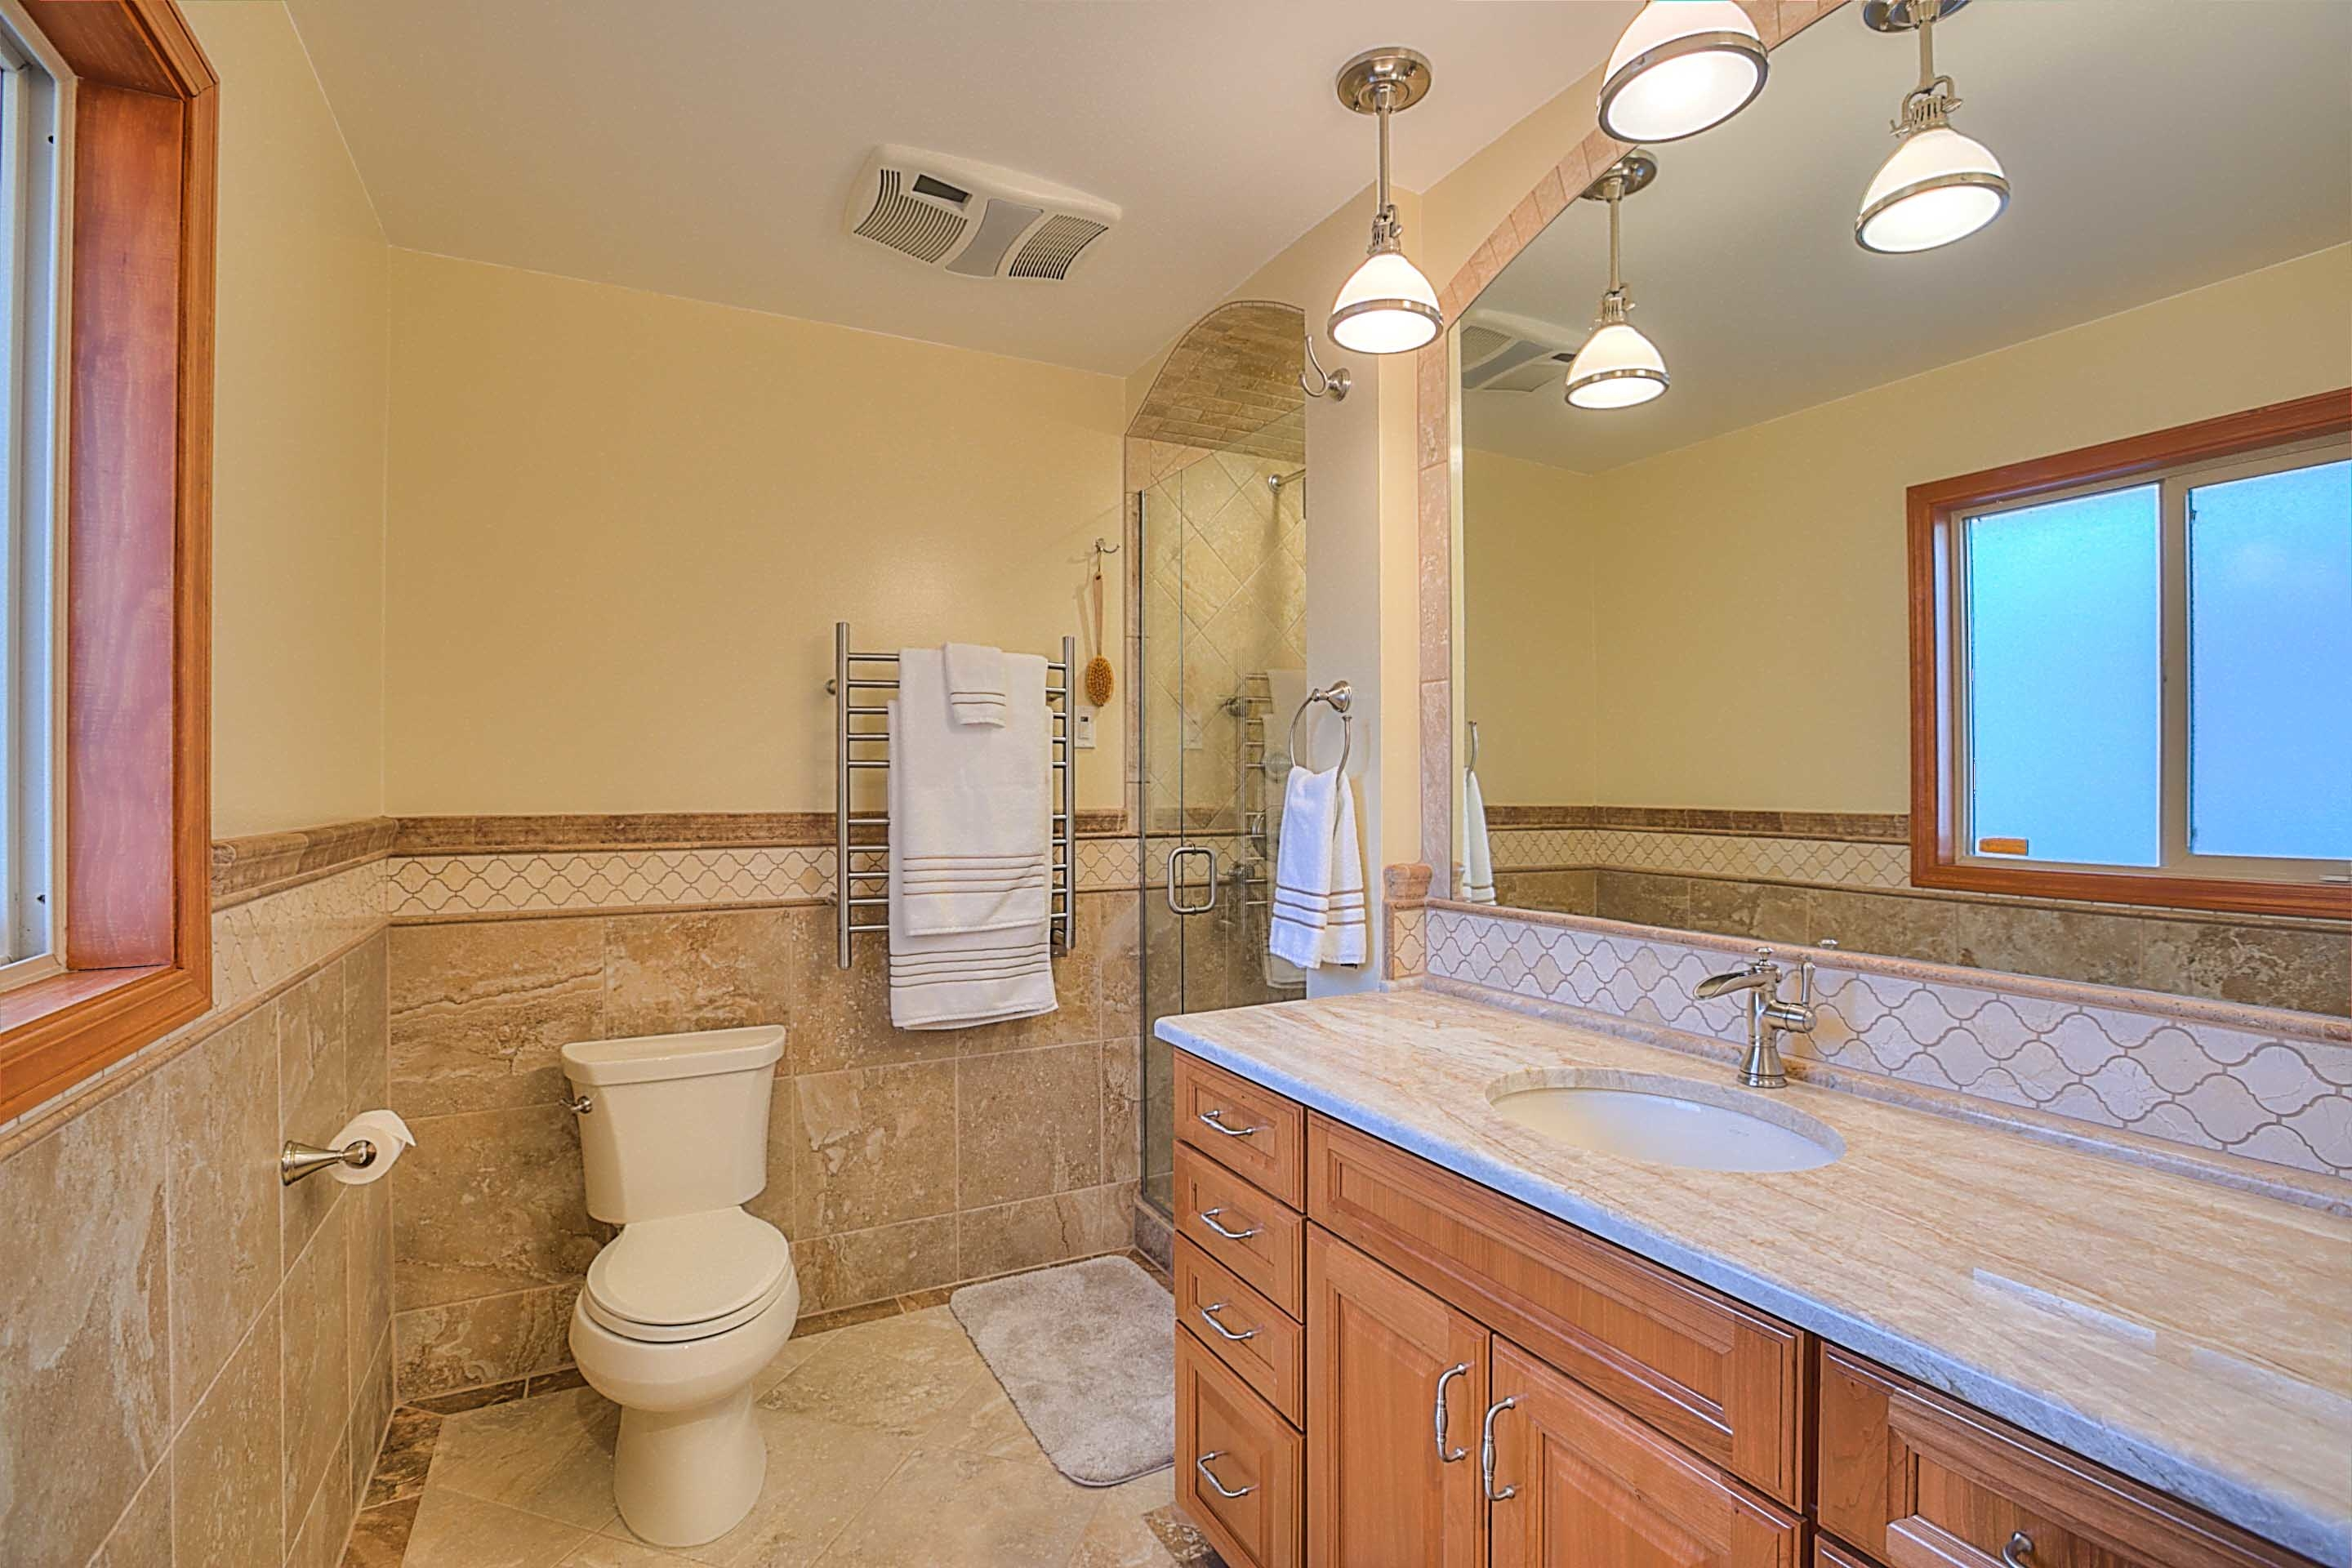 Triumph remodel albuquerque new mexico nm for Local bathroom remodelers